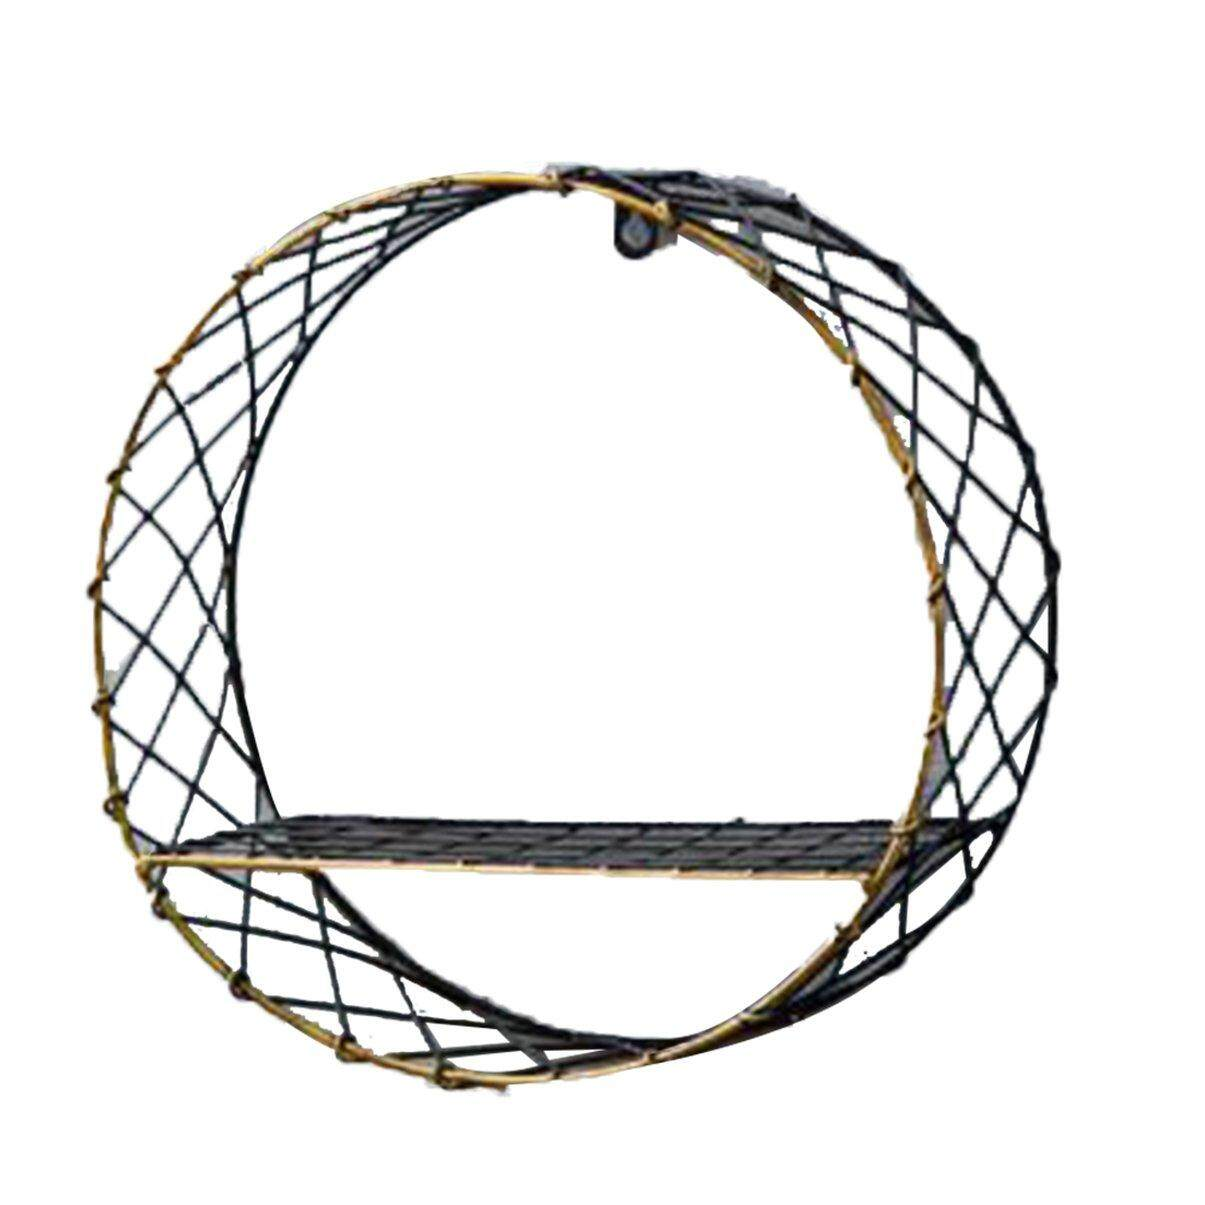 Crazy Deal Wall Shelf Home Multi-Layer Solid Wood Bookshelf Round Large Net Wall Hanging